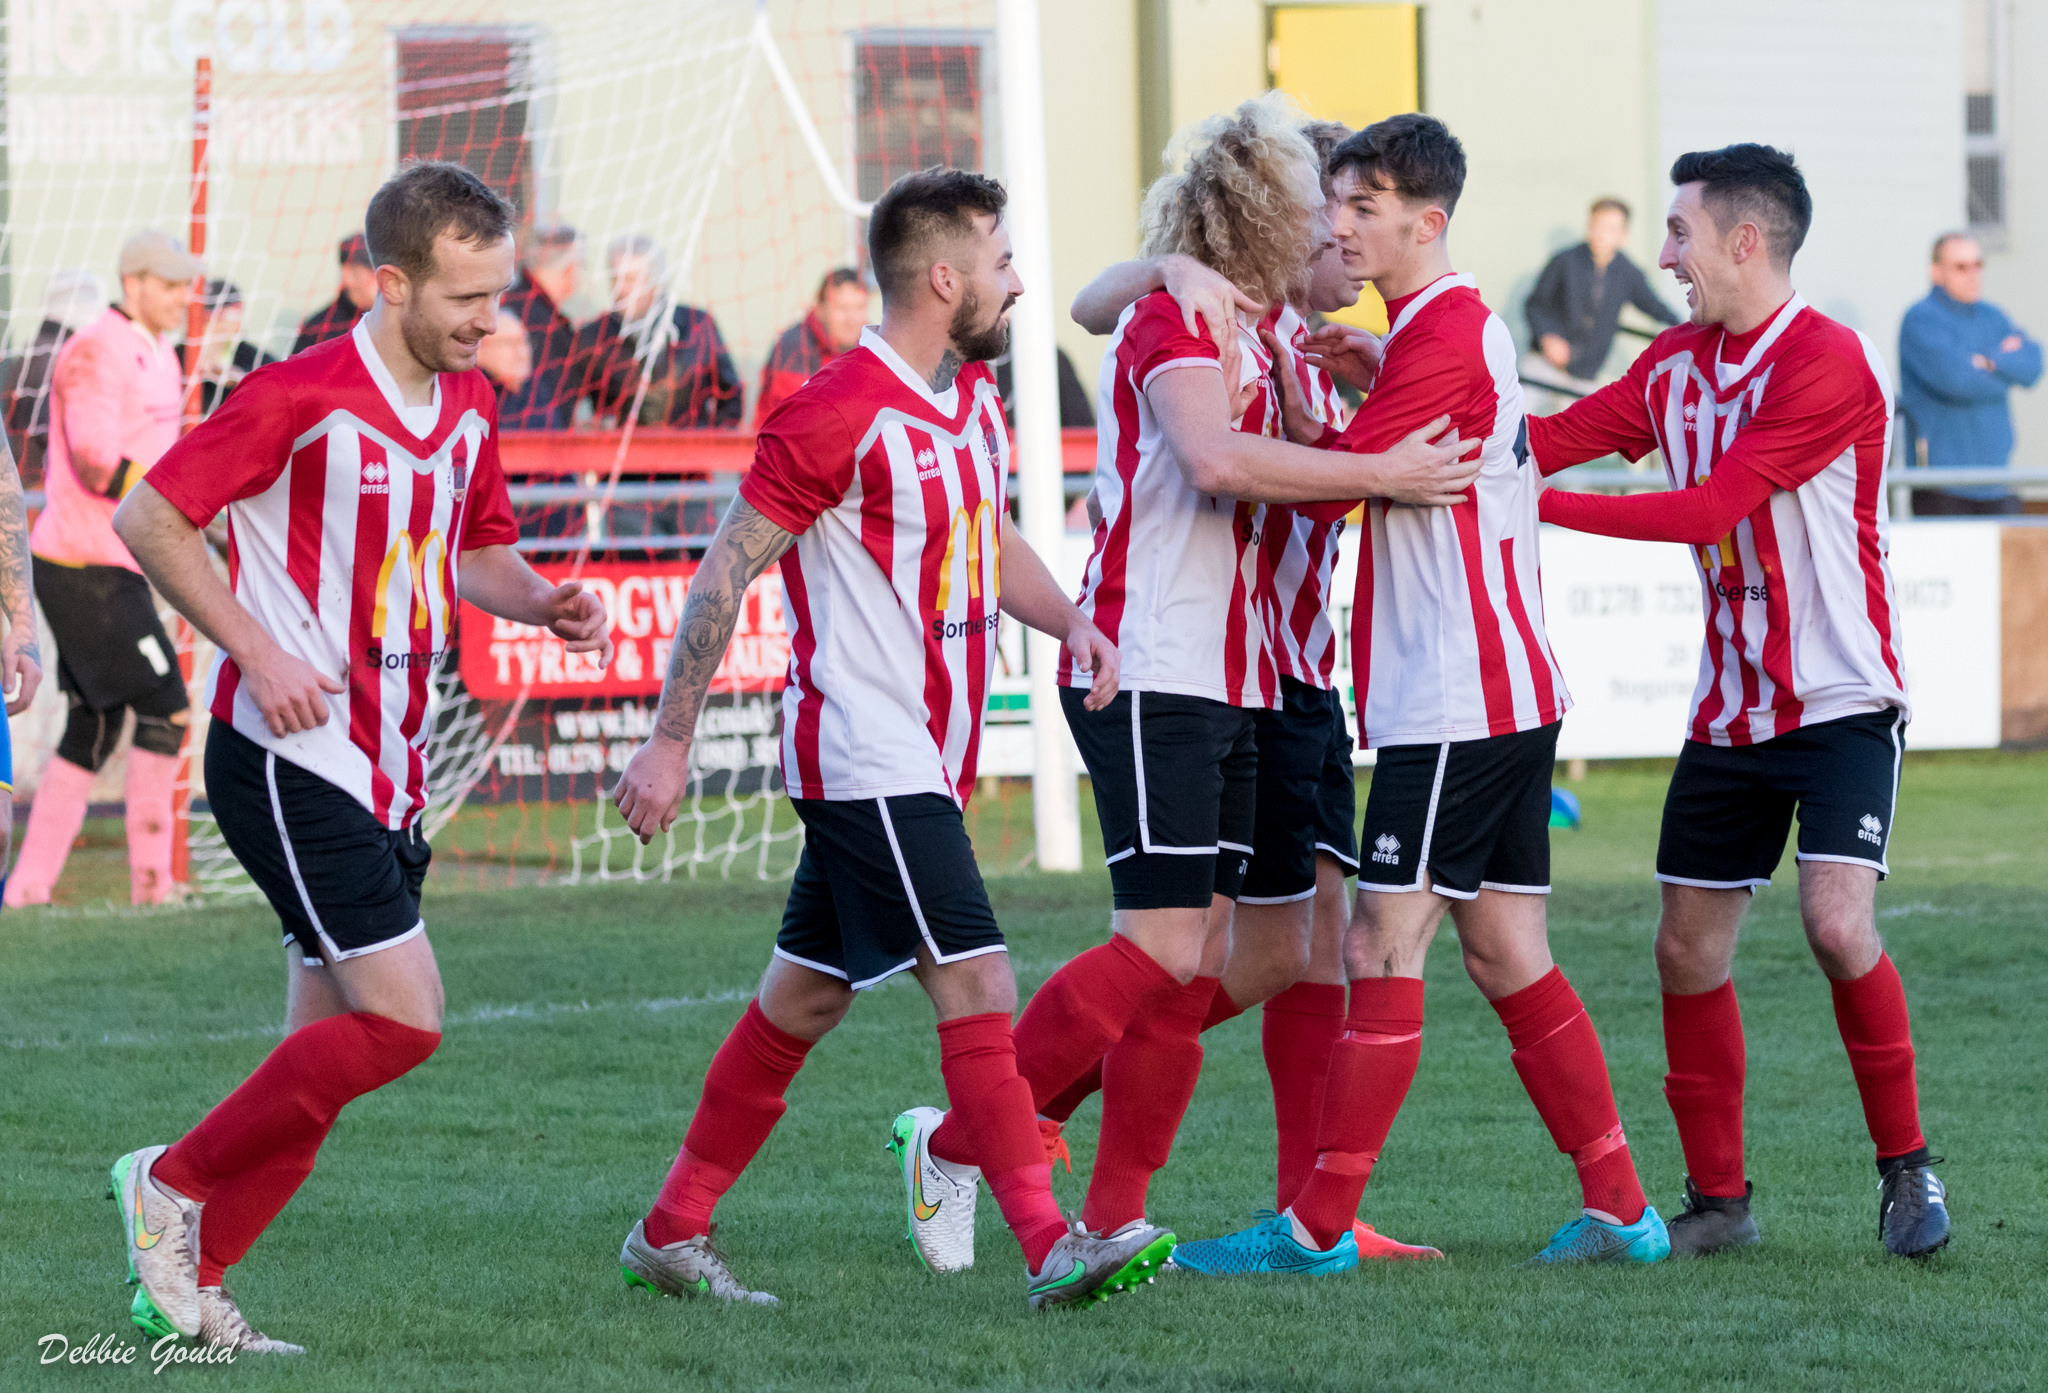 DELIGHT: Will there be more FA Vase joy for Bridgwater Town on Saturday? Pic: Debbie Gould